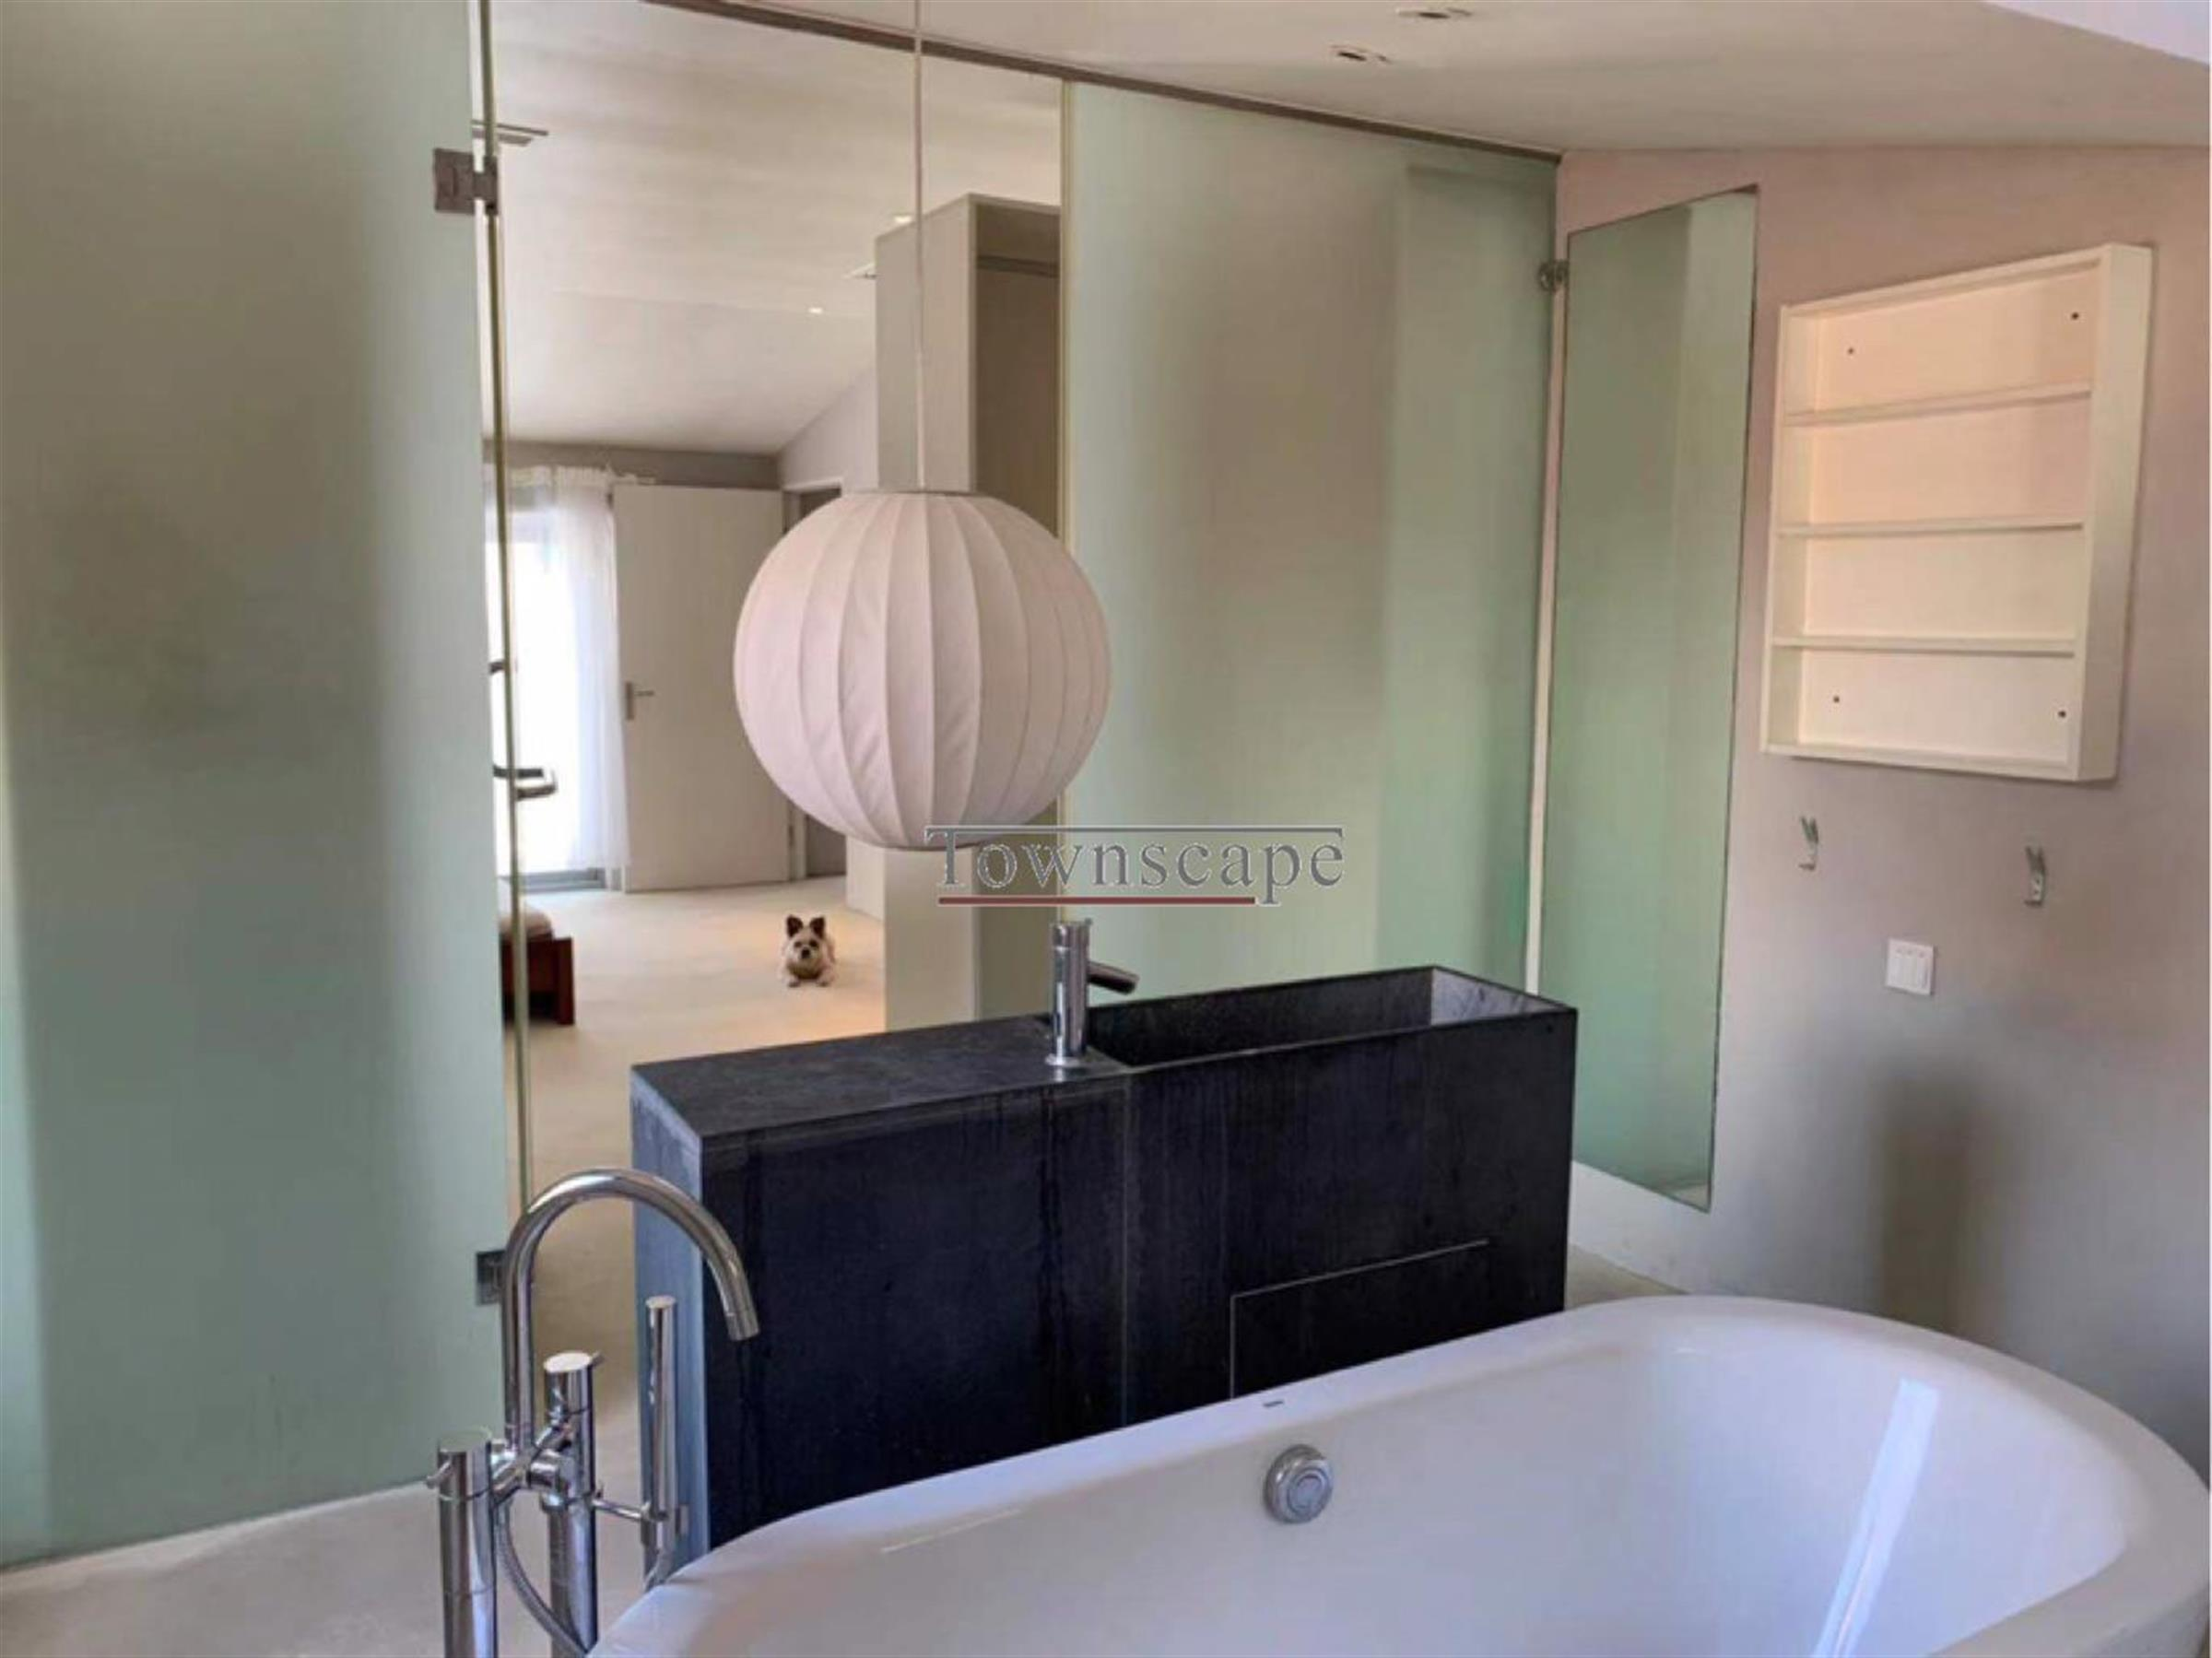 bathtub Large 3F FFC Lane House for Rent in Shanghai